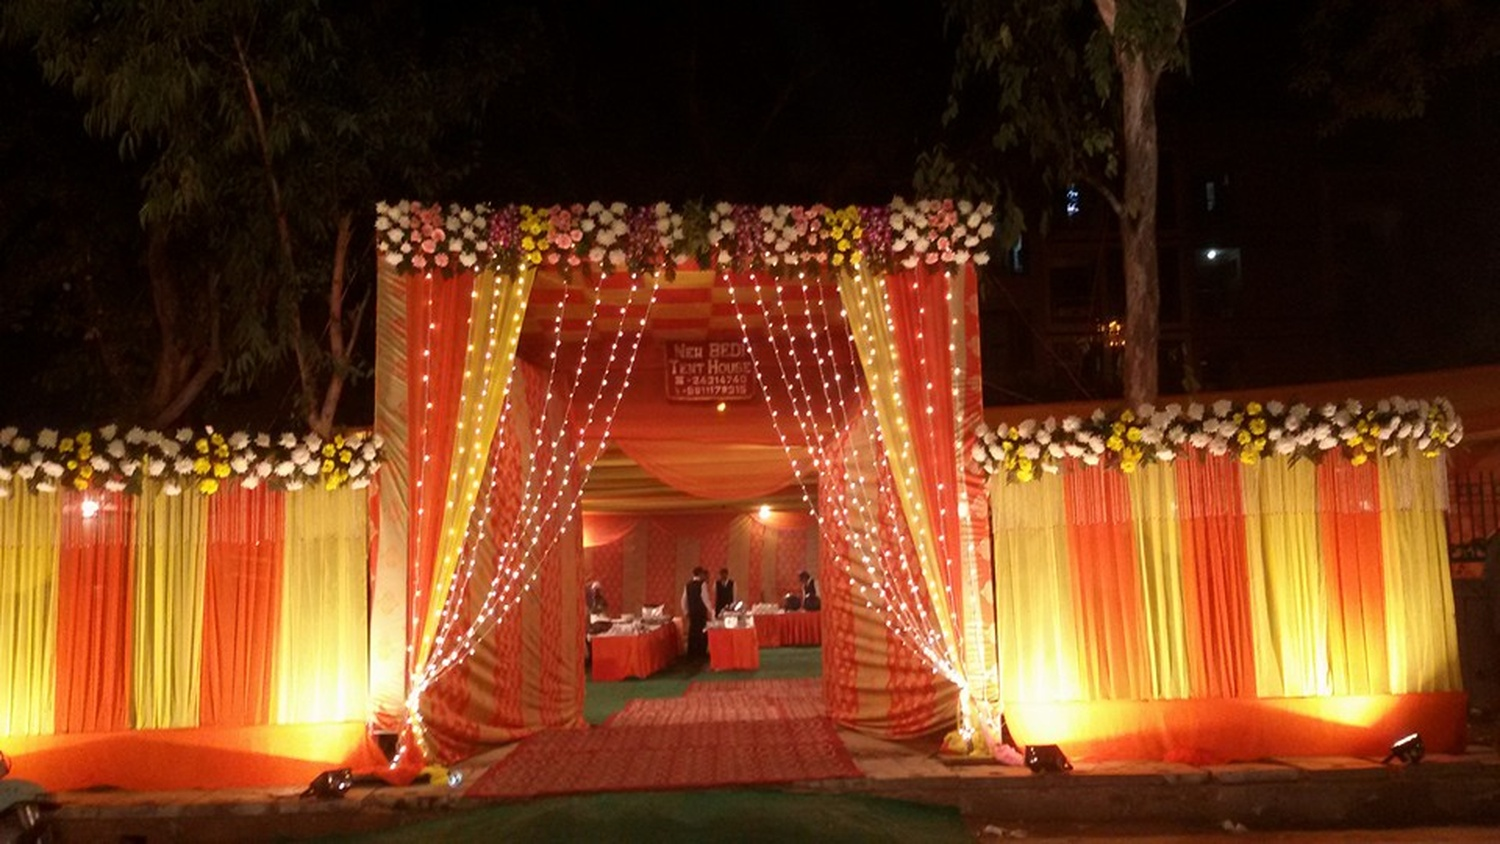 decorative lights for weddings bedi tent amp light house wedding decorator in delhi weddingz 3458